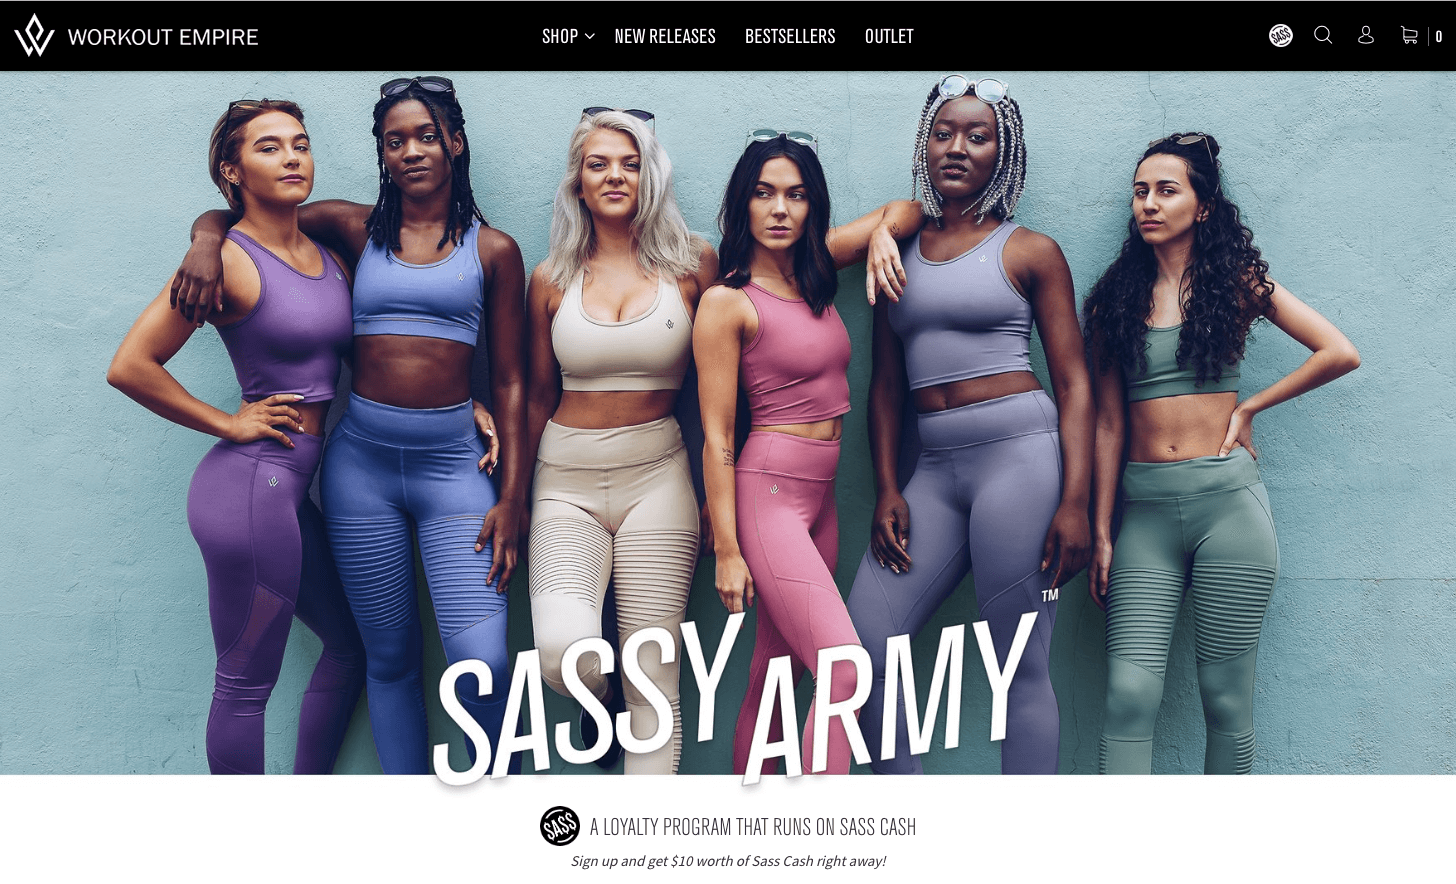 Workout Army's Sassy Army explainer page